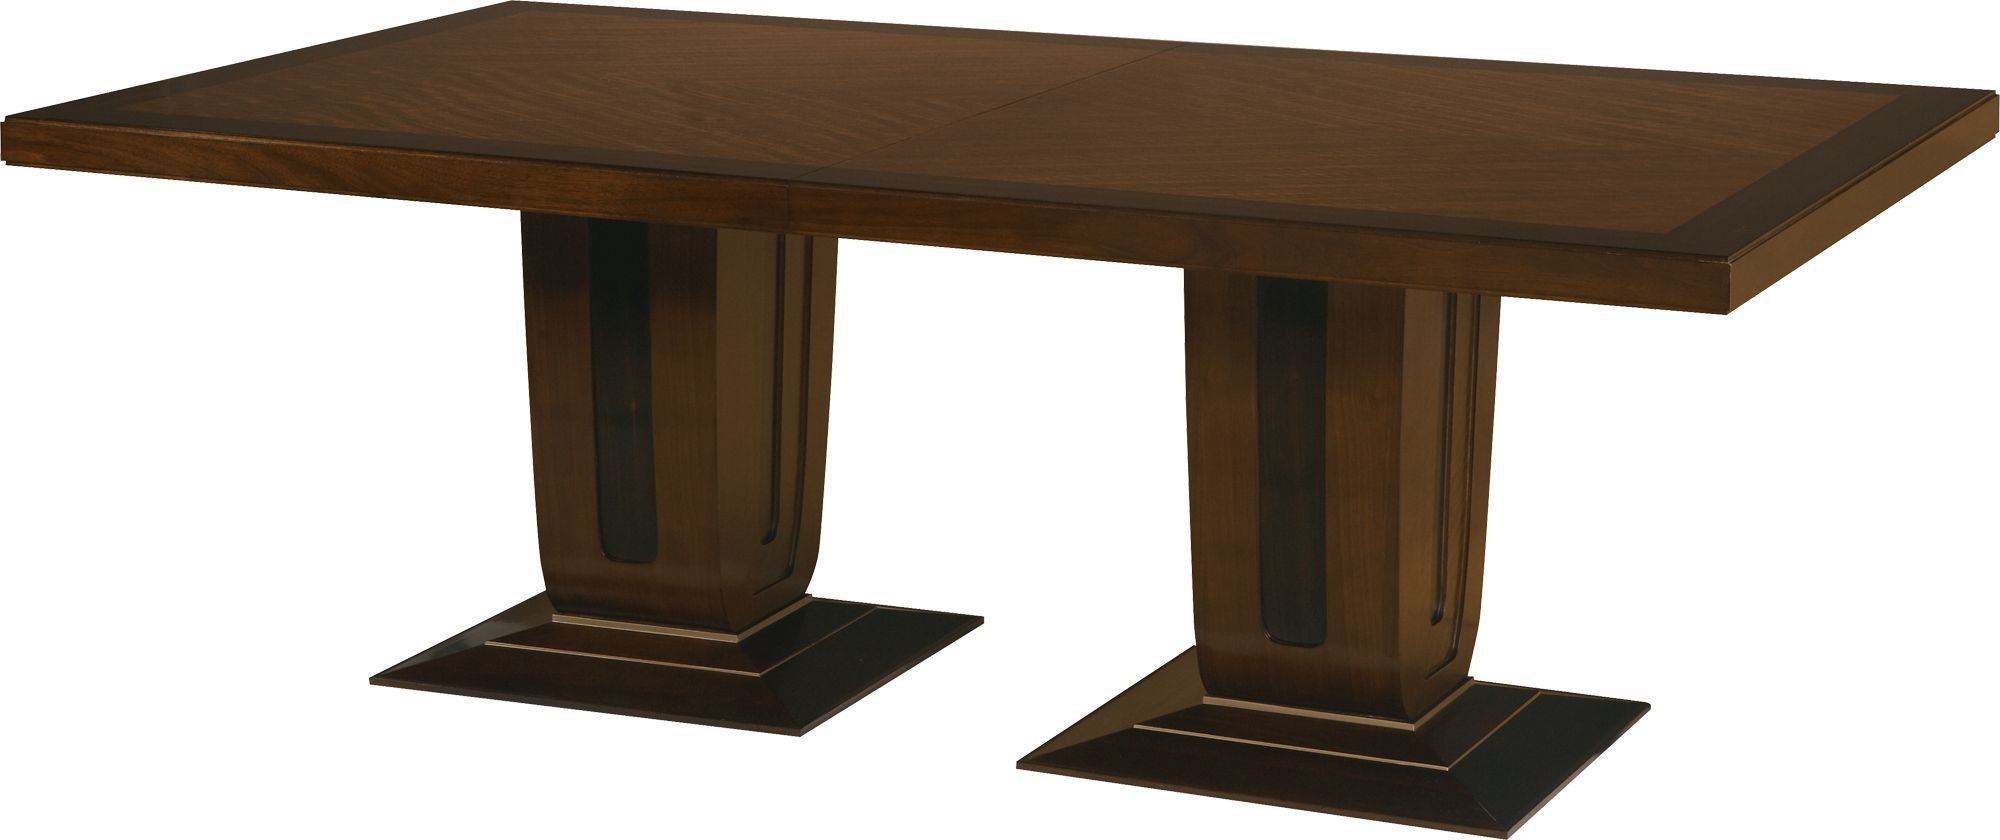 Baker Furniture Dining Room Bill Sofield Beekman Dining